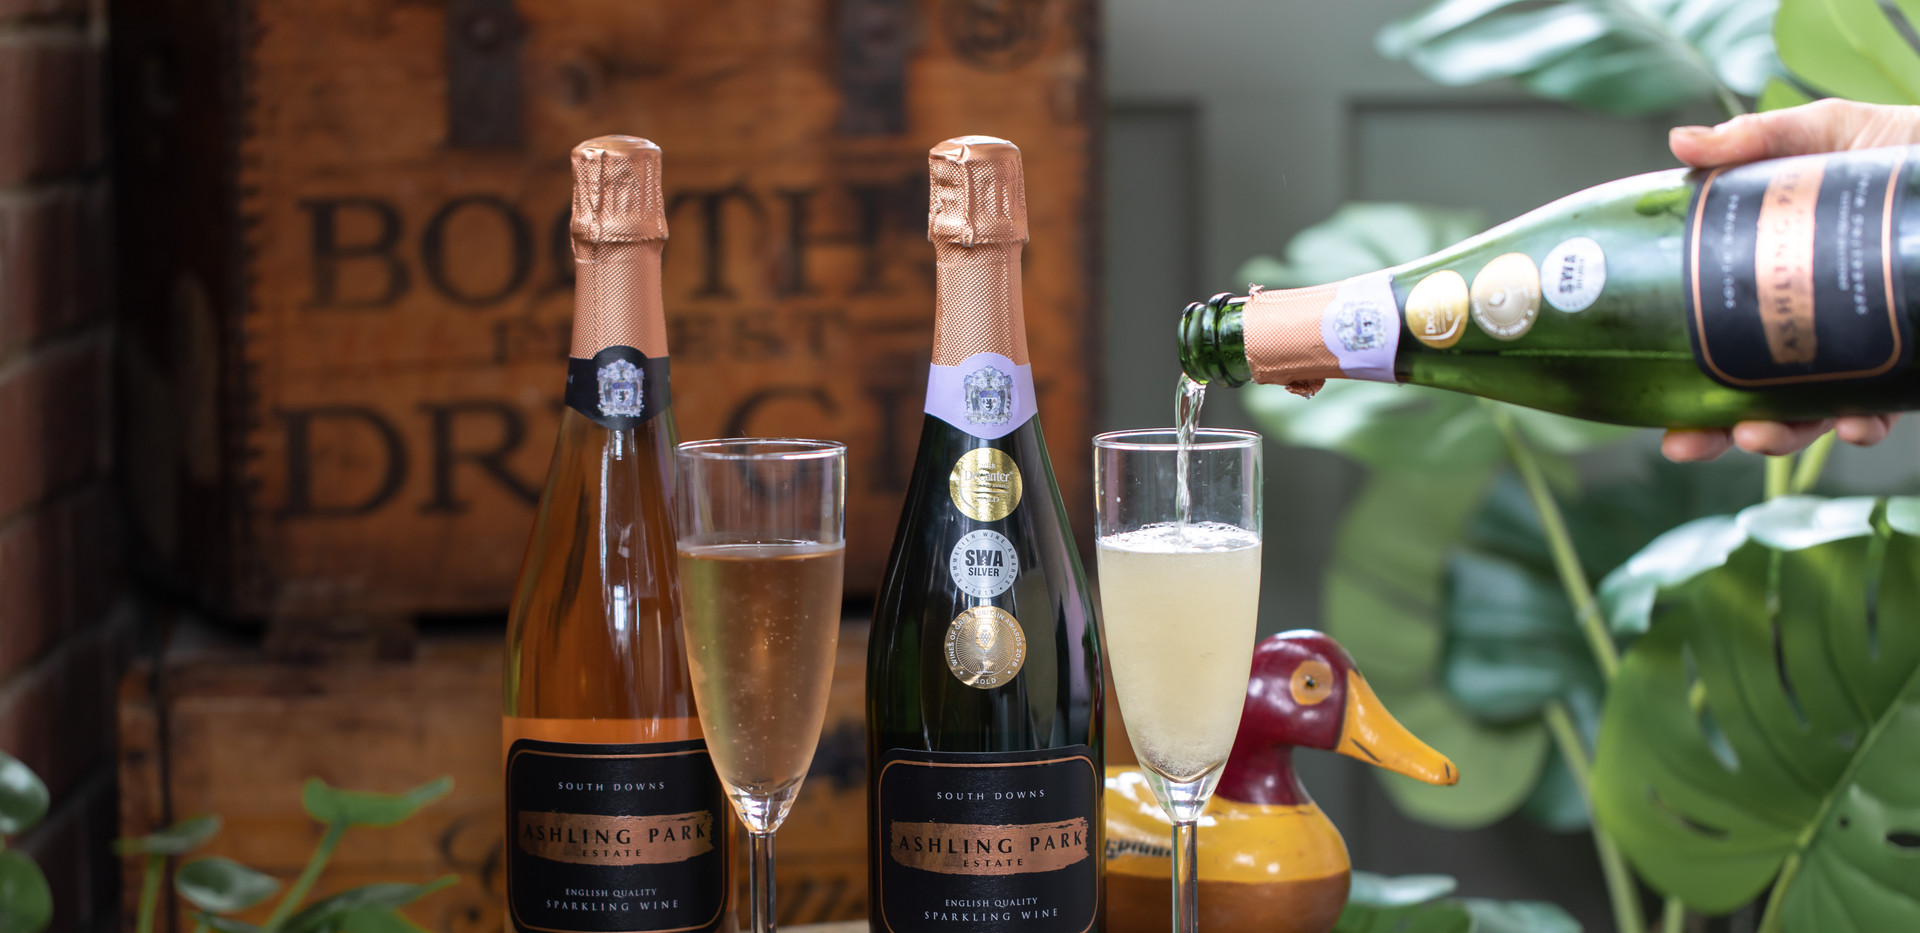 Ashling Park sparkling wine at The Richmond Arms in West Ashling